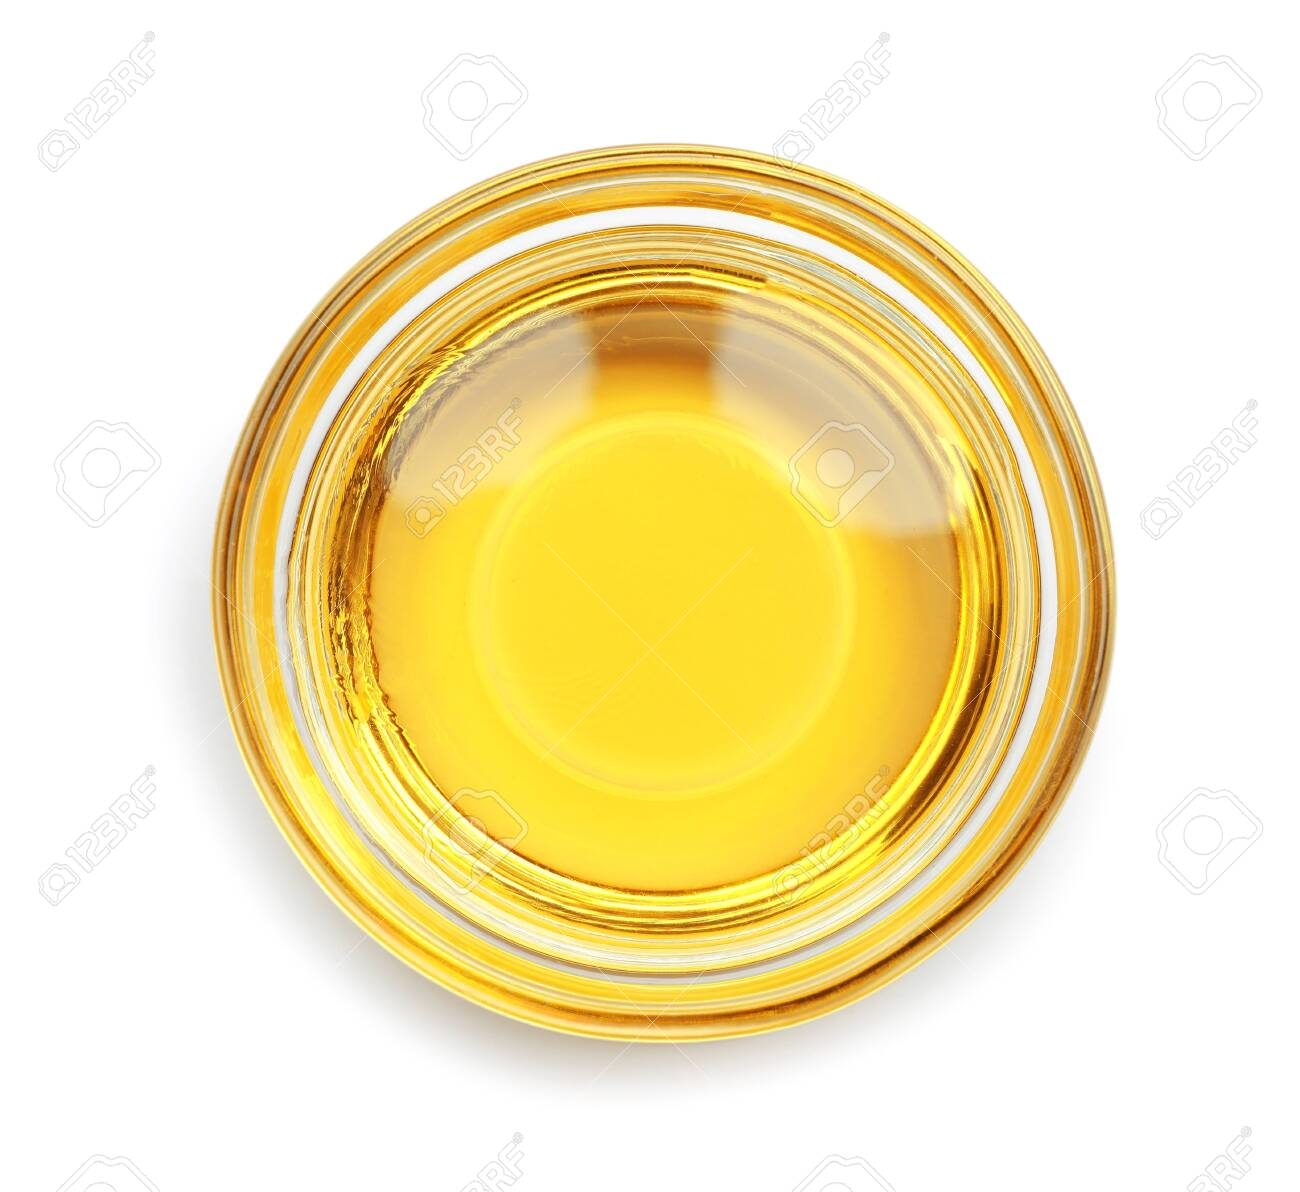 Cooking oil in glass bowl isolated on white, top view - 137772935